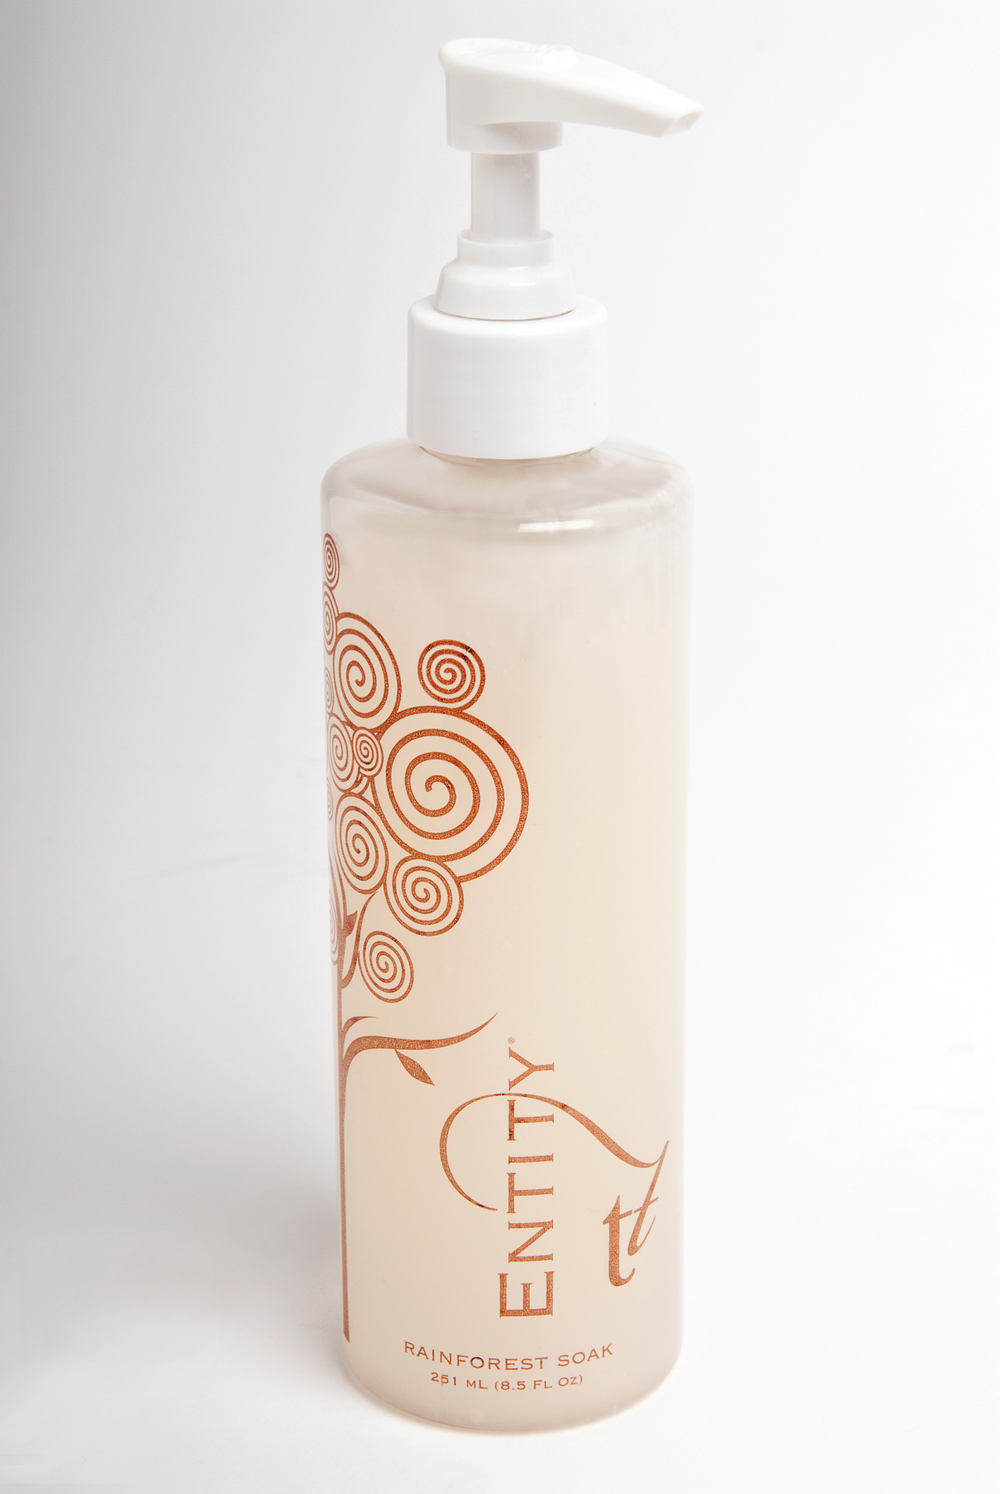 """<p><a href=""""http://www.entitybeauty.com/"""">Entity&rsquo;s</a> Rainforest Soak cleanses the skin with ingredients known to remove toxins and impurities. Pump approximately one to three pumps of Rainforest Soak into a comfortably warm bath; and soak for about 10 minutes. Infused with rich coconut milk, this unique formula soothes and stimulates the skin. Bamboo extract energizes and invigorates while the essences of the tropical jaboncillo berry create a sumptuous lightly foaming, cleansing bath that smells as delicious as it feels.</p>"""